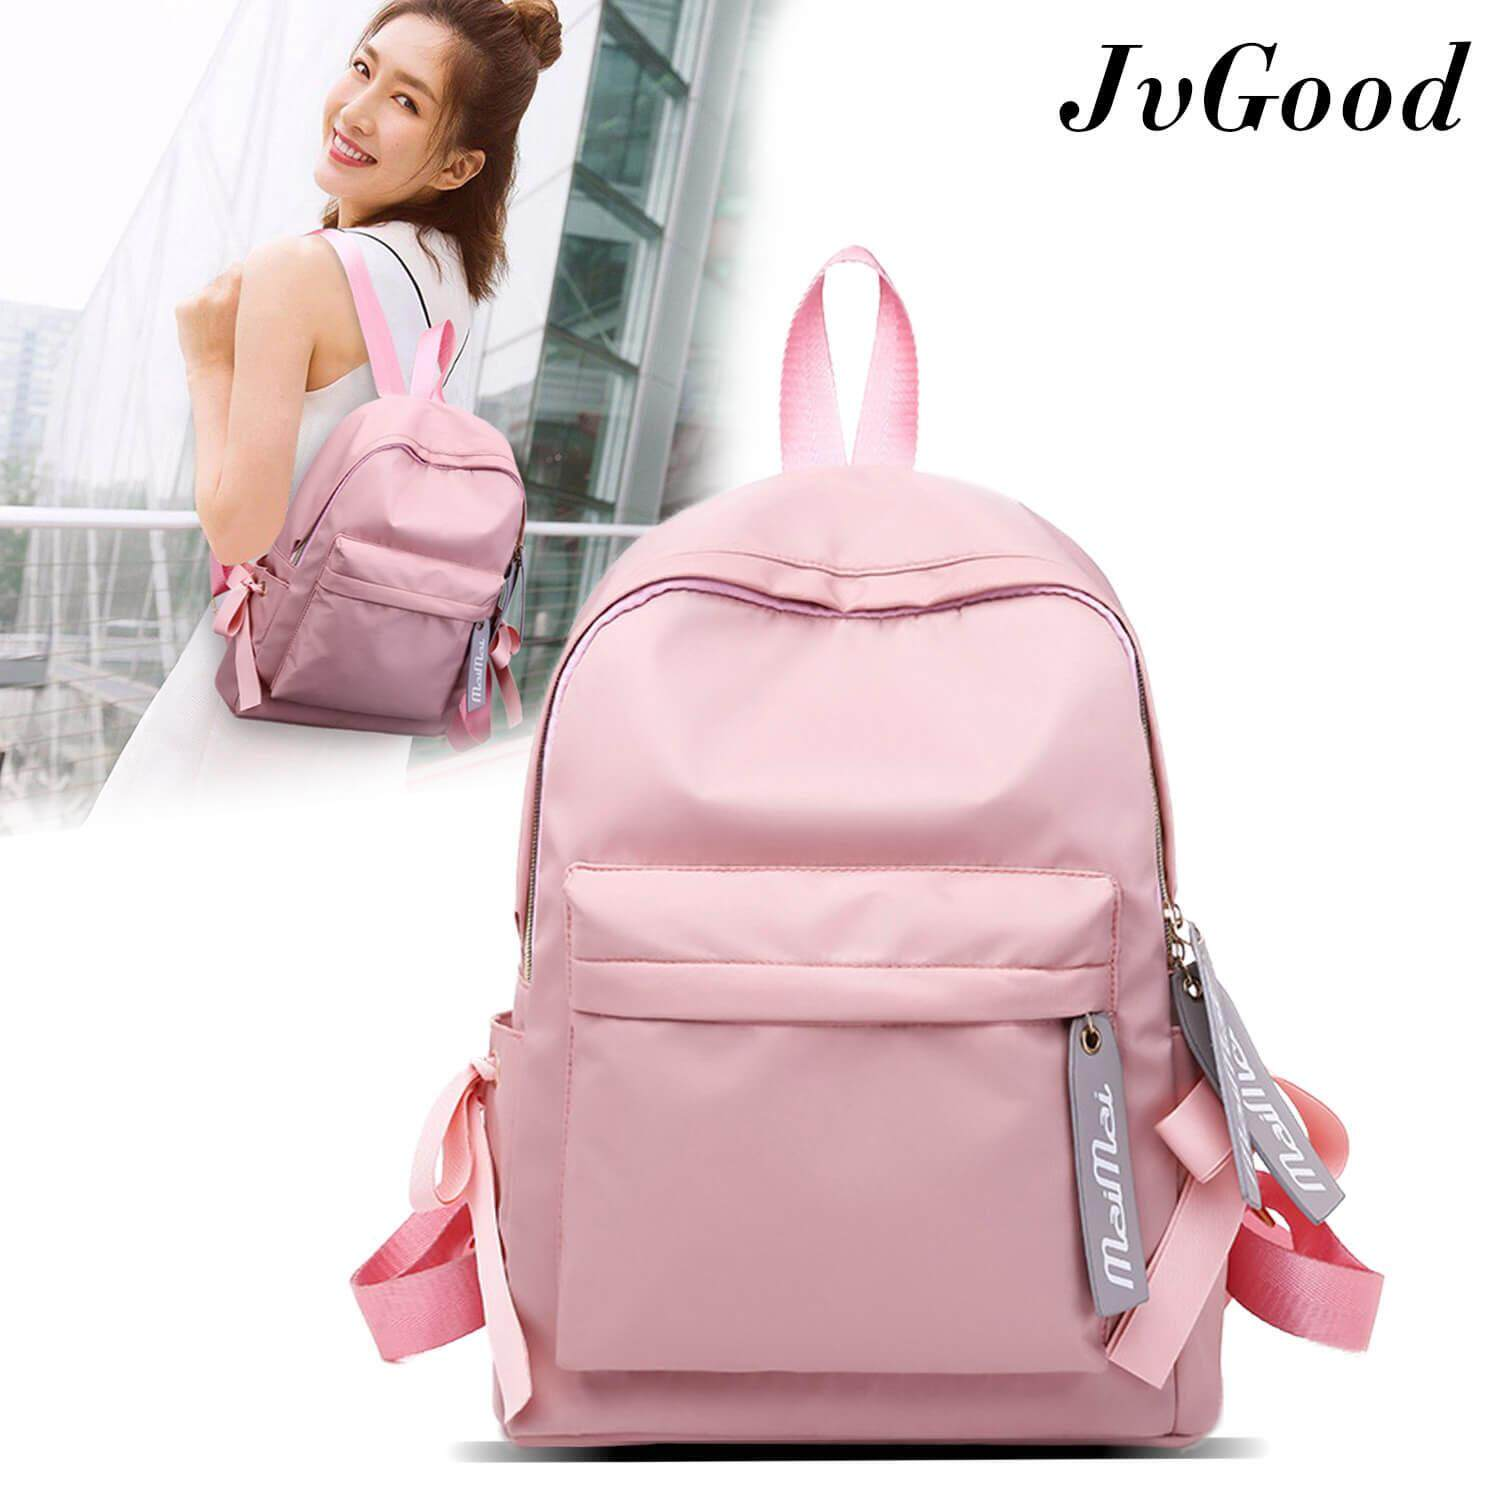 JvGood School Backpacks Shoulder Bag Backpacks College School Bookbag Laptop Computer Backpacks for Students Boys Girls Waterproof Nylon Daypack Anti-theft Bag